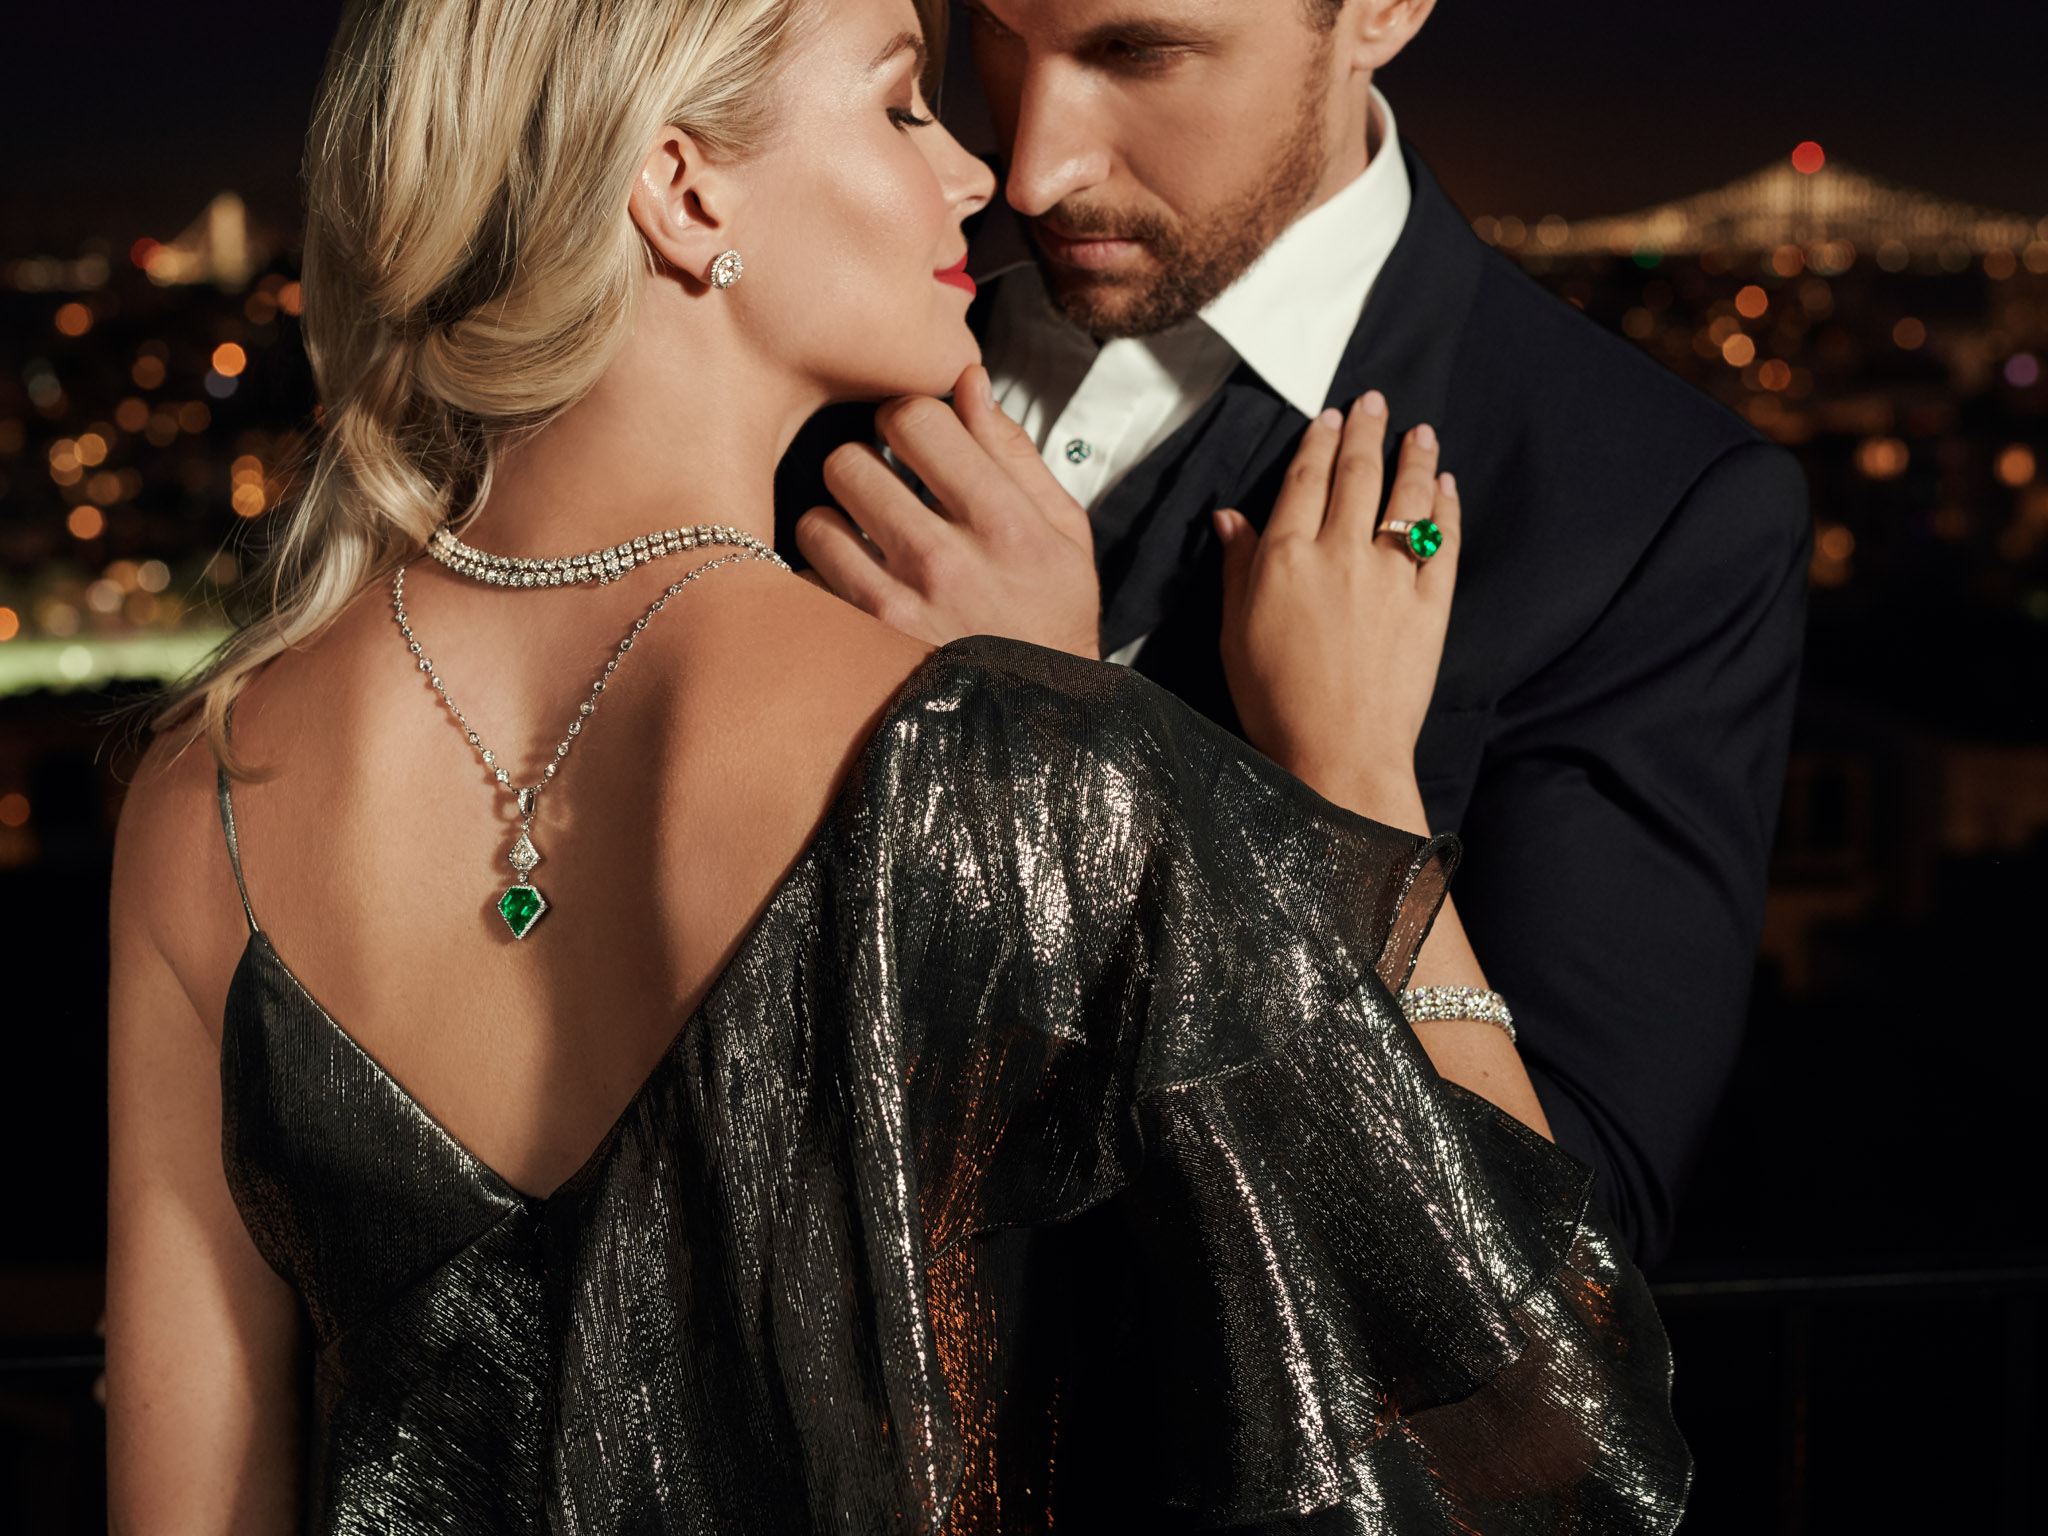 advertisement photoshoot of jewelry in New York